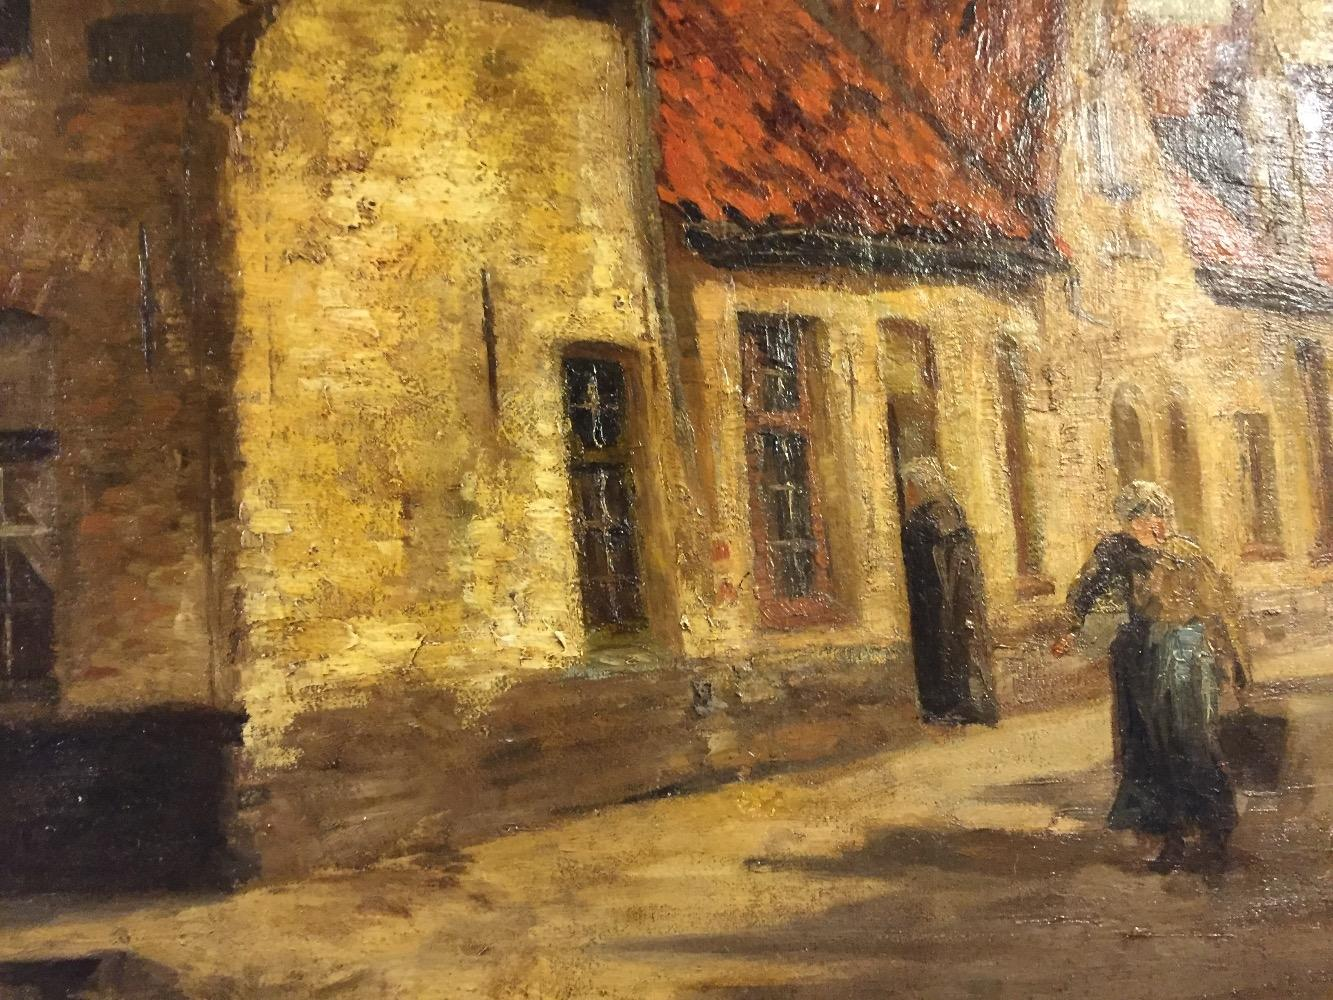 The milkmaid in the streets of Bruges